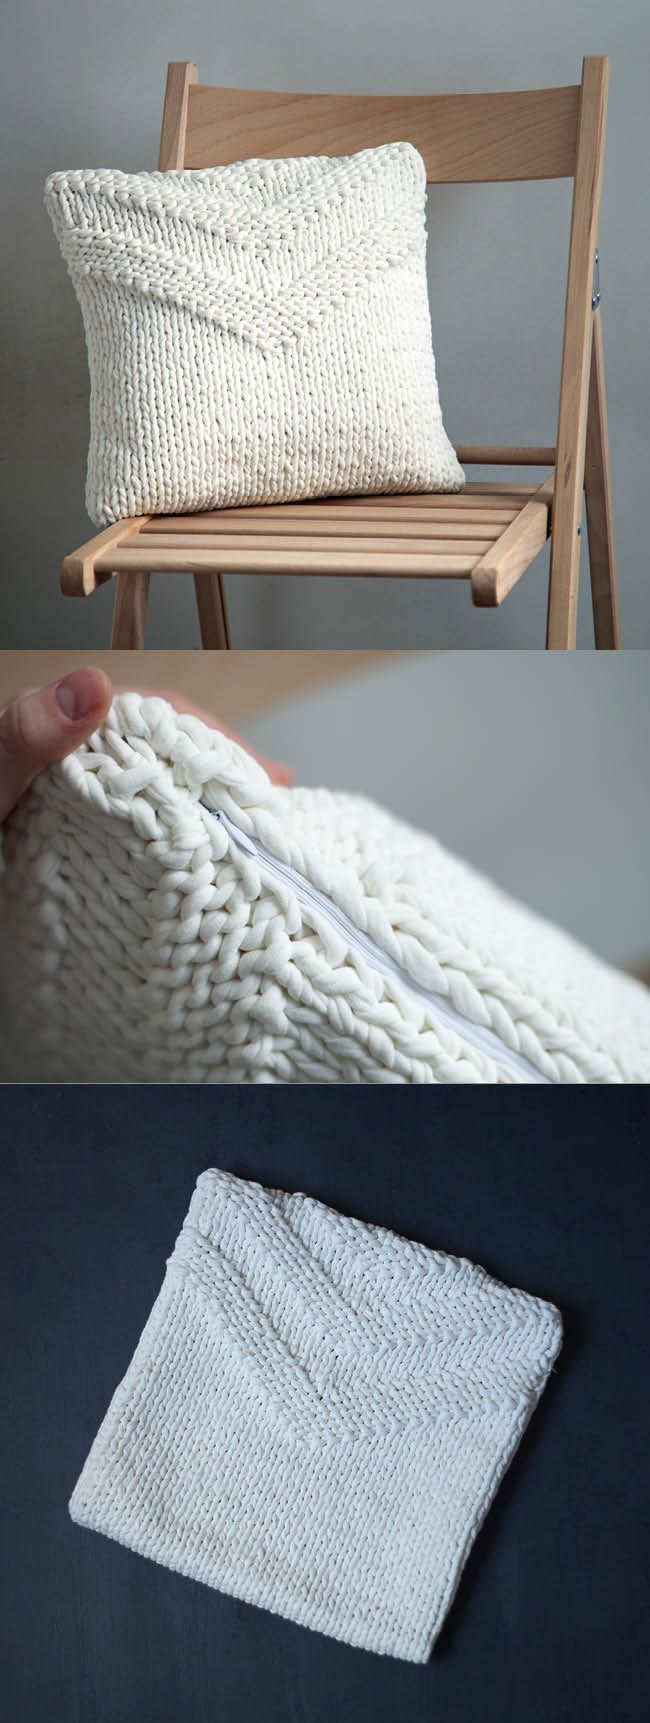 White Knitted pillow cover for standard IKEA pillows - Milky decorative pillow case from the cotton yarn.